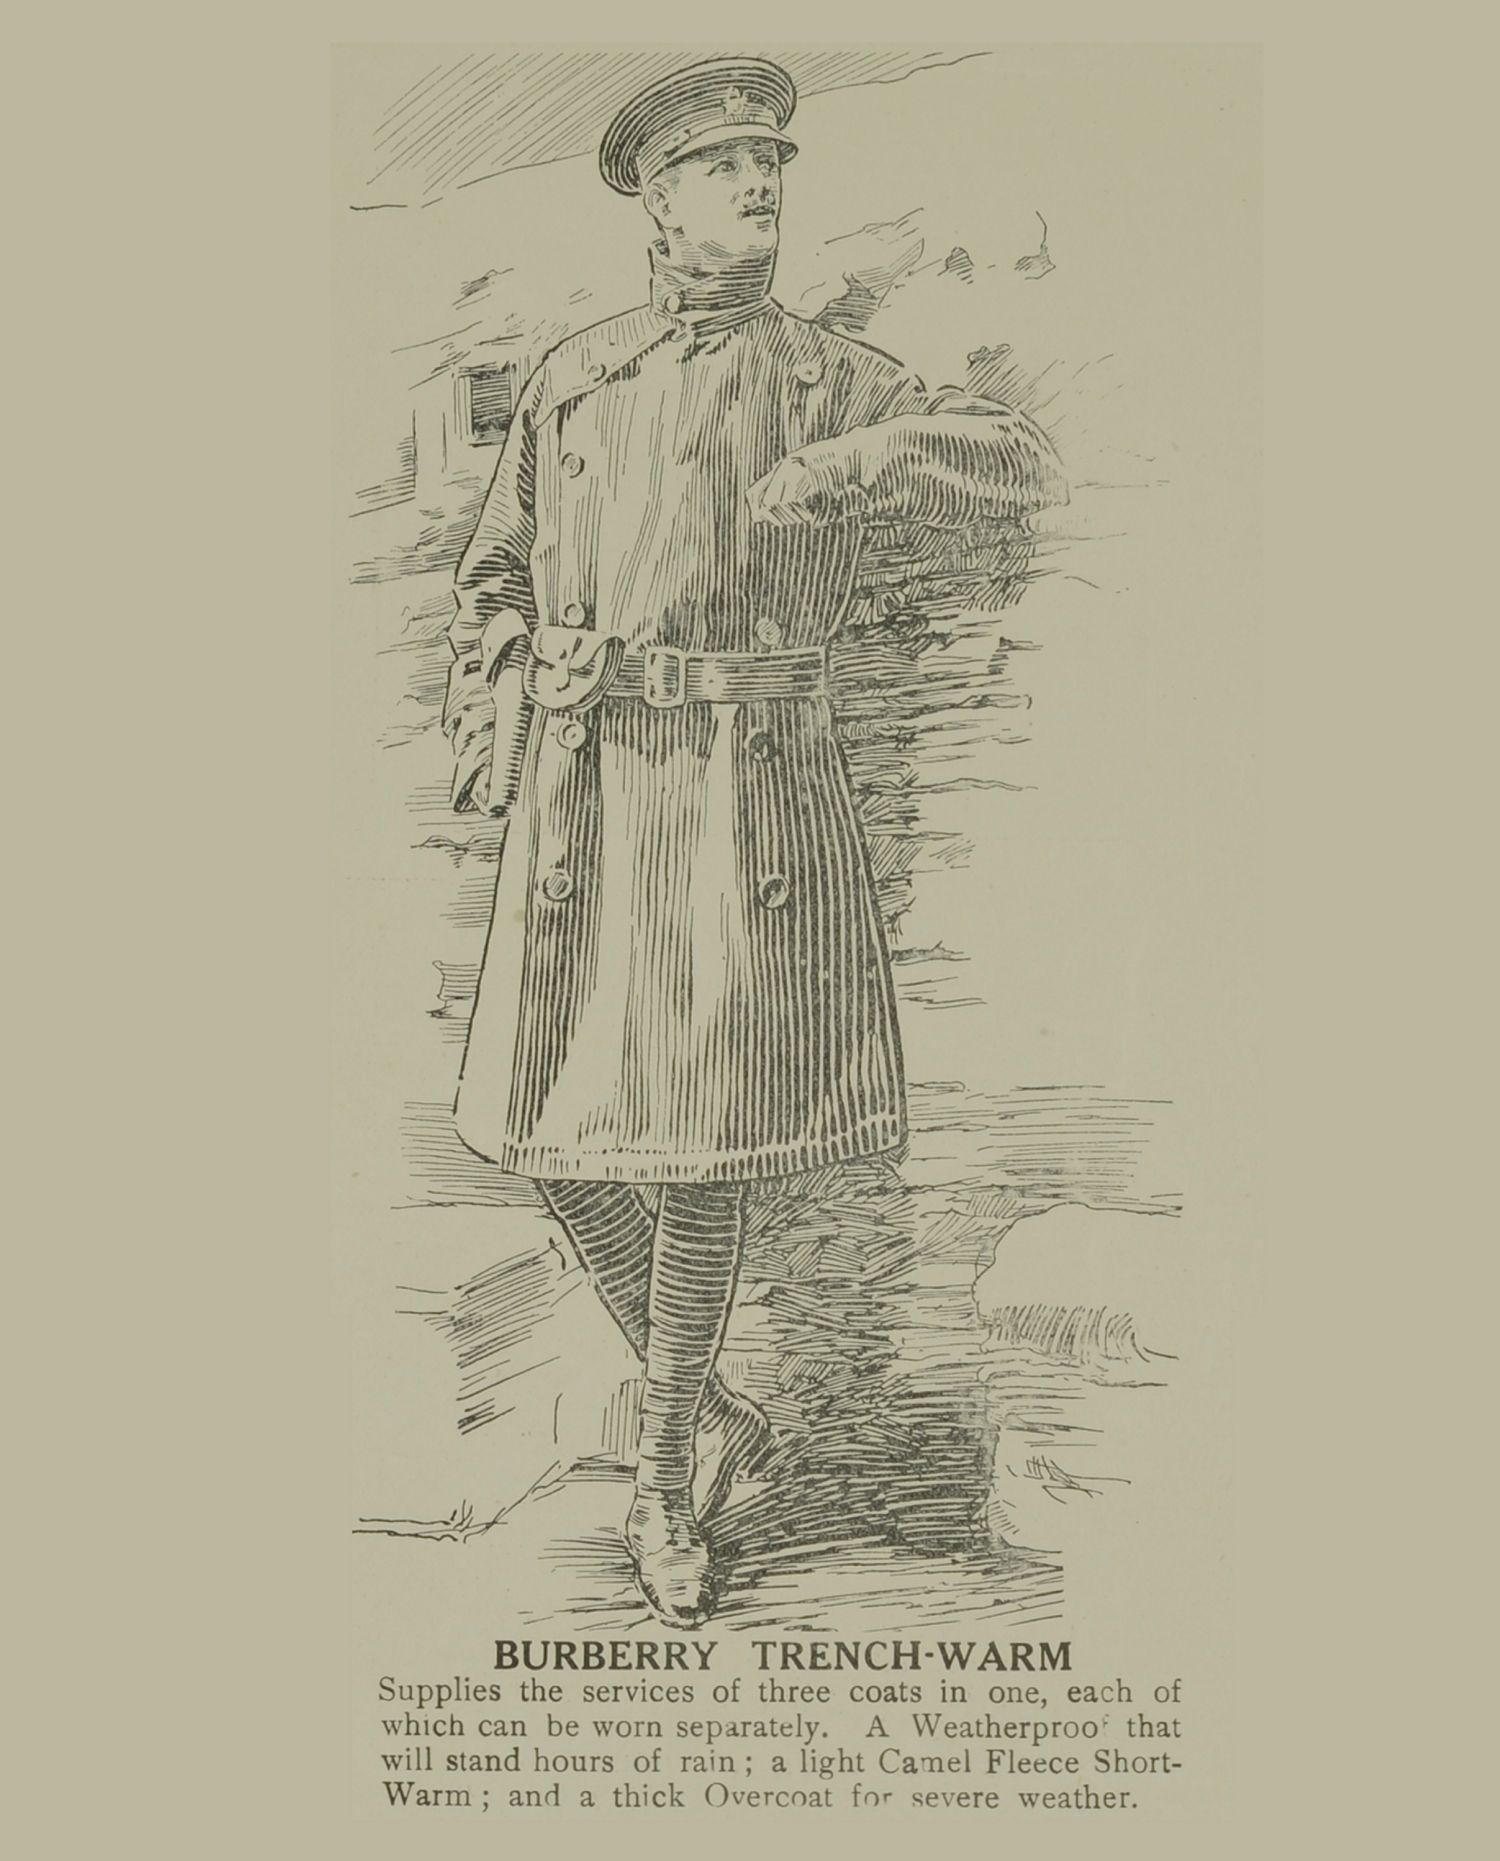 The Burberry trench coat is invented during the First World War. The functional design includes epaulettes used to suspend military equipment such as gloves and whistles, D-rings used to carry grenades, the gun flap to provide additional protection when in action and the storm shield to allow water to run off it smoothly.